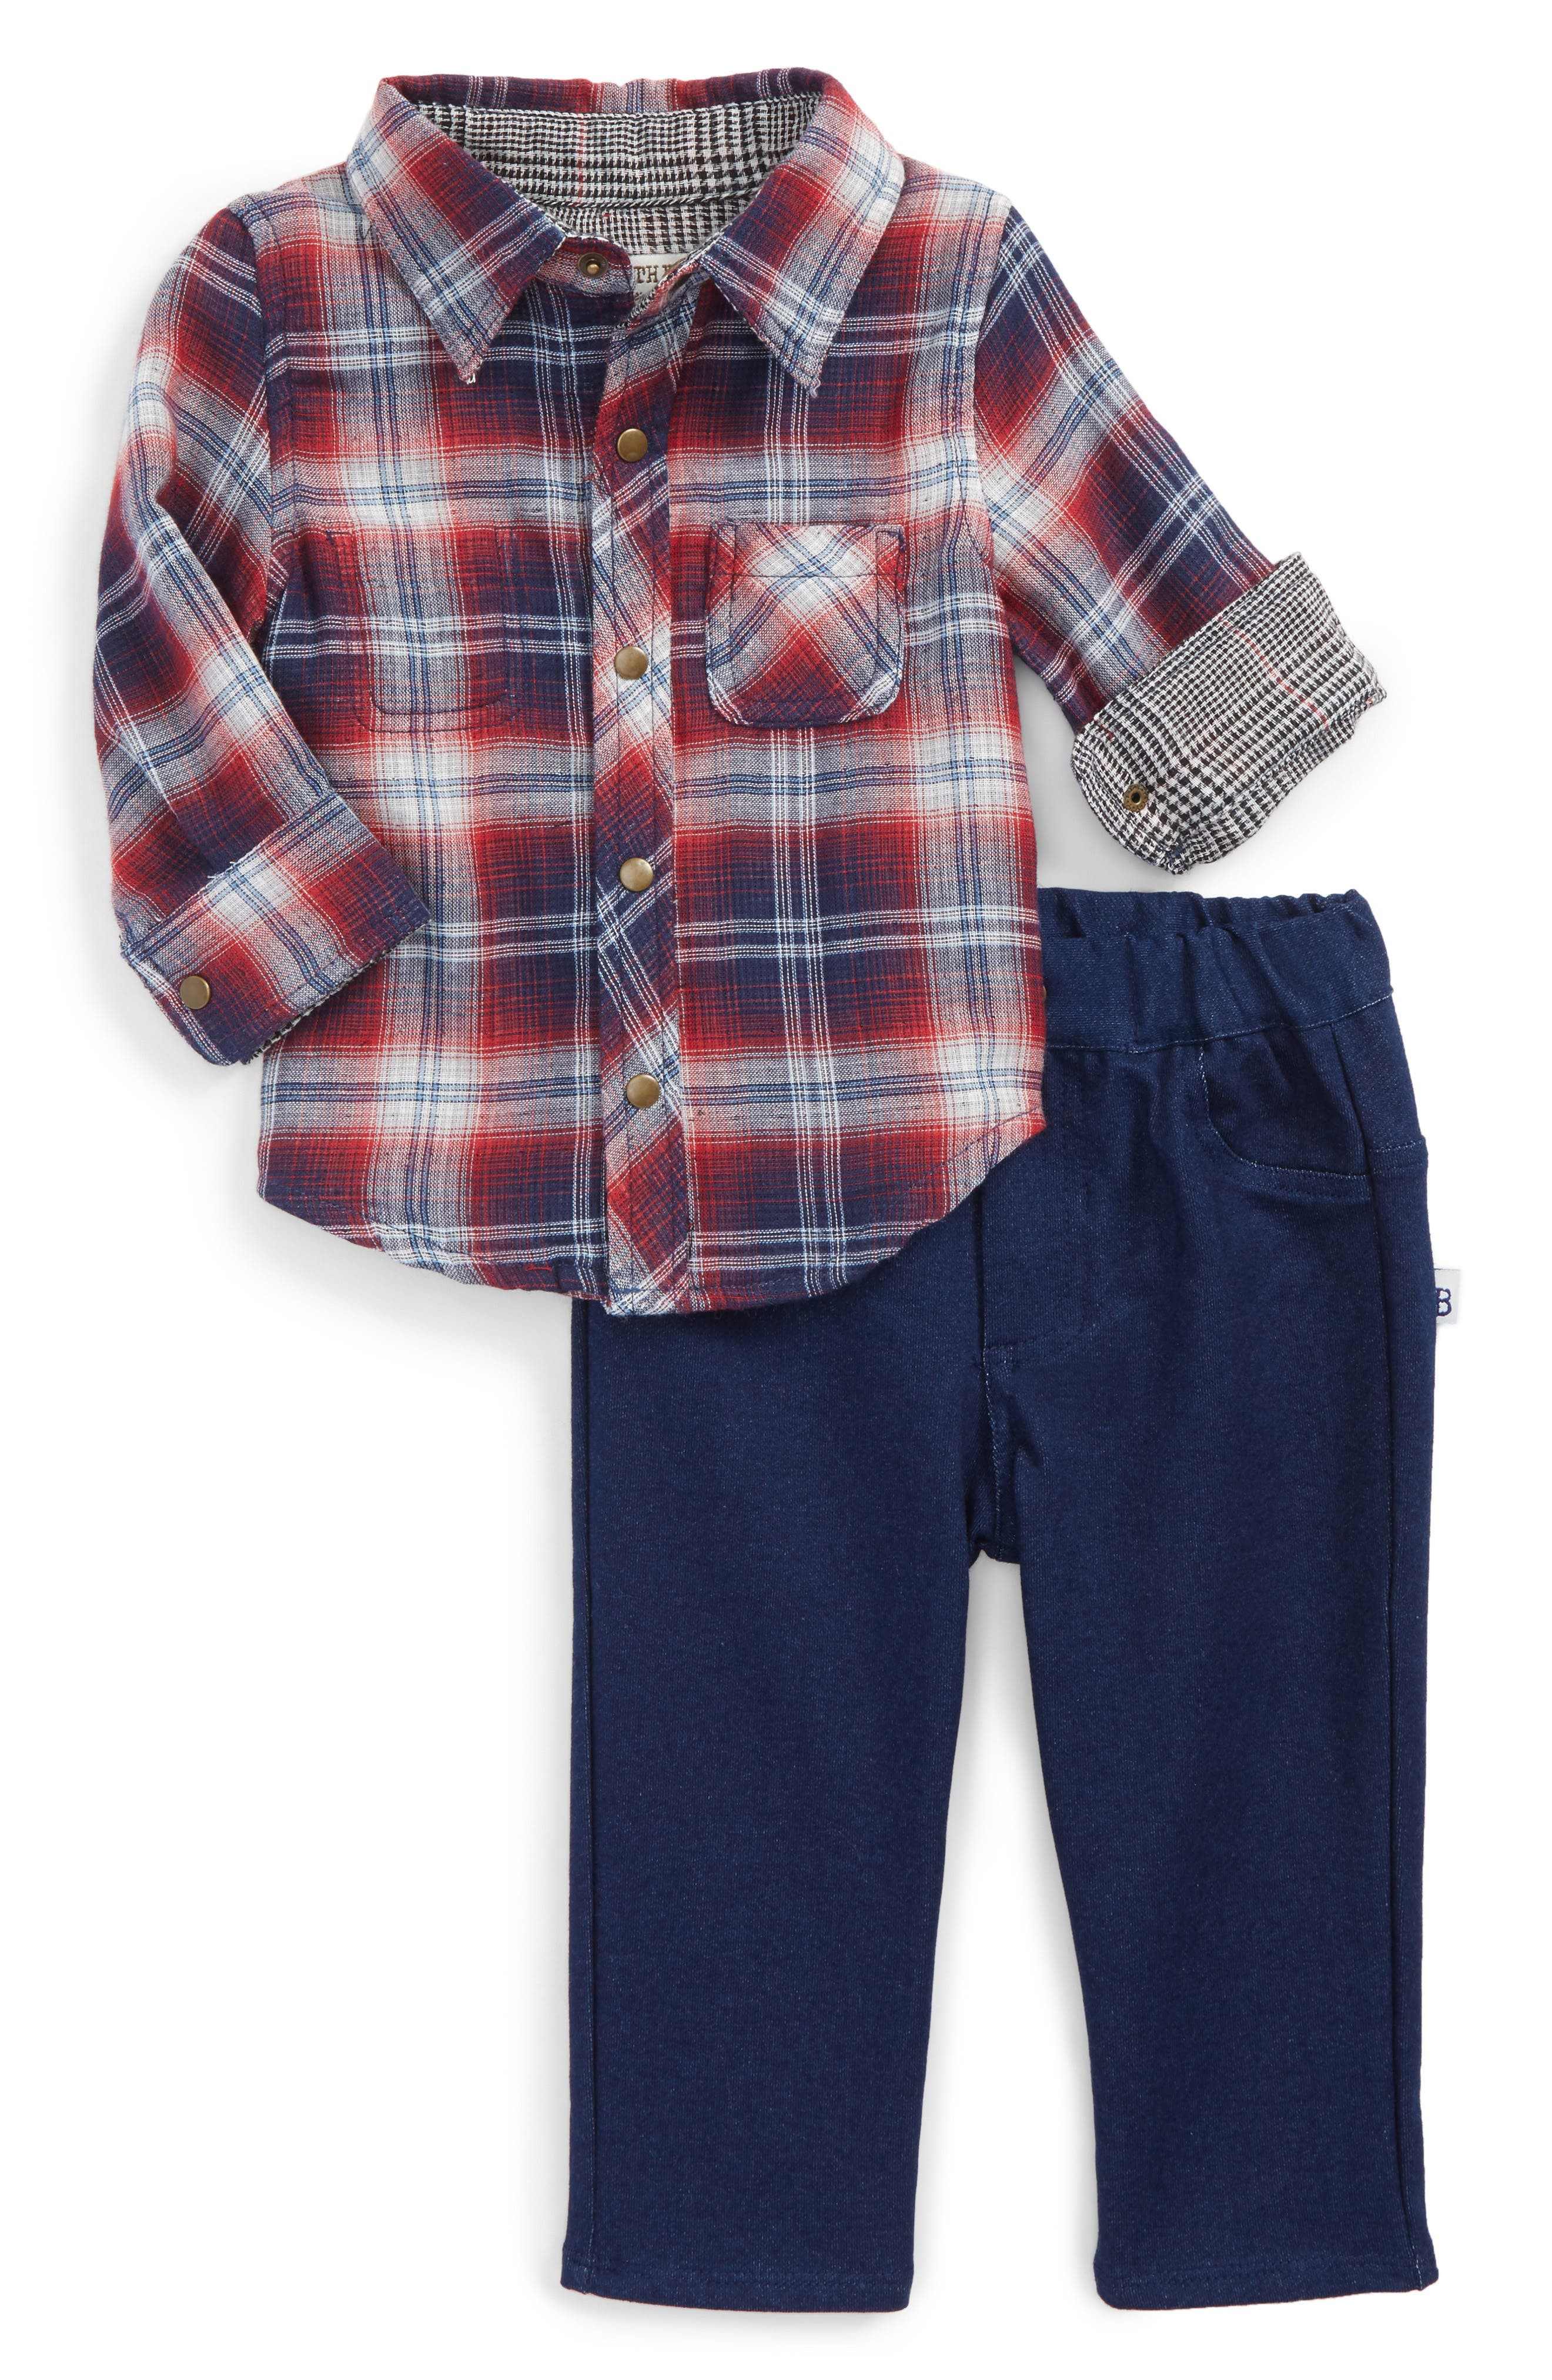 Alternate Image 1 Selected - Little Brother by Pippa & Julie Reversible Woven Shirt & Pants Set (Baby Boys)